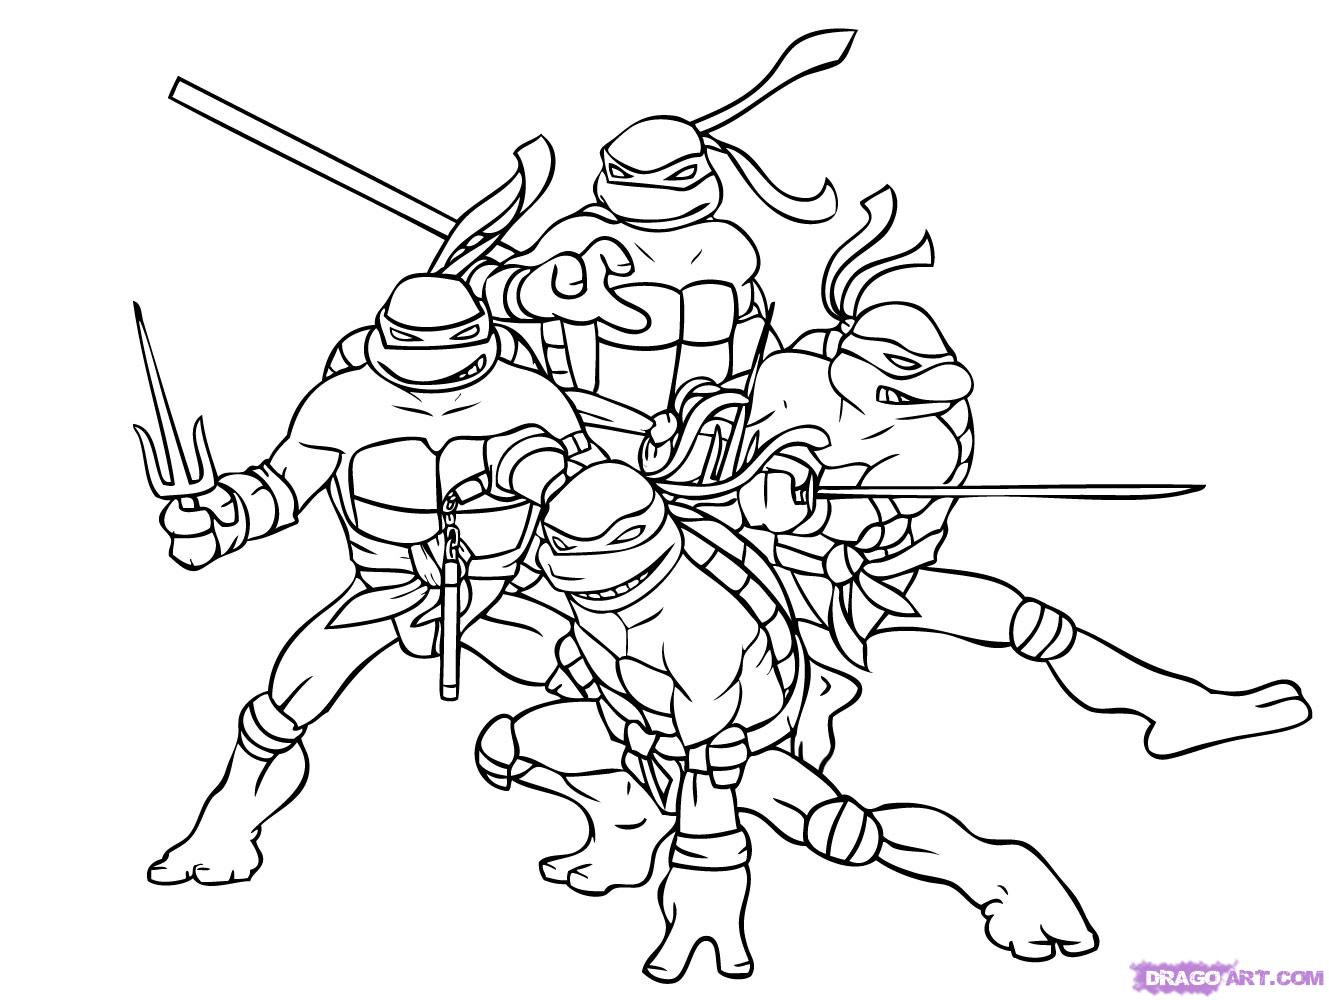 Tmnt Coloring Pages To Print